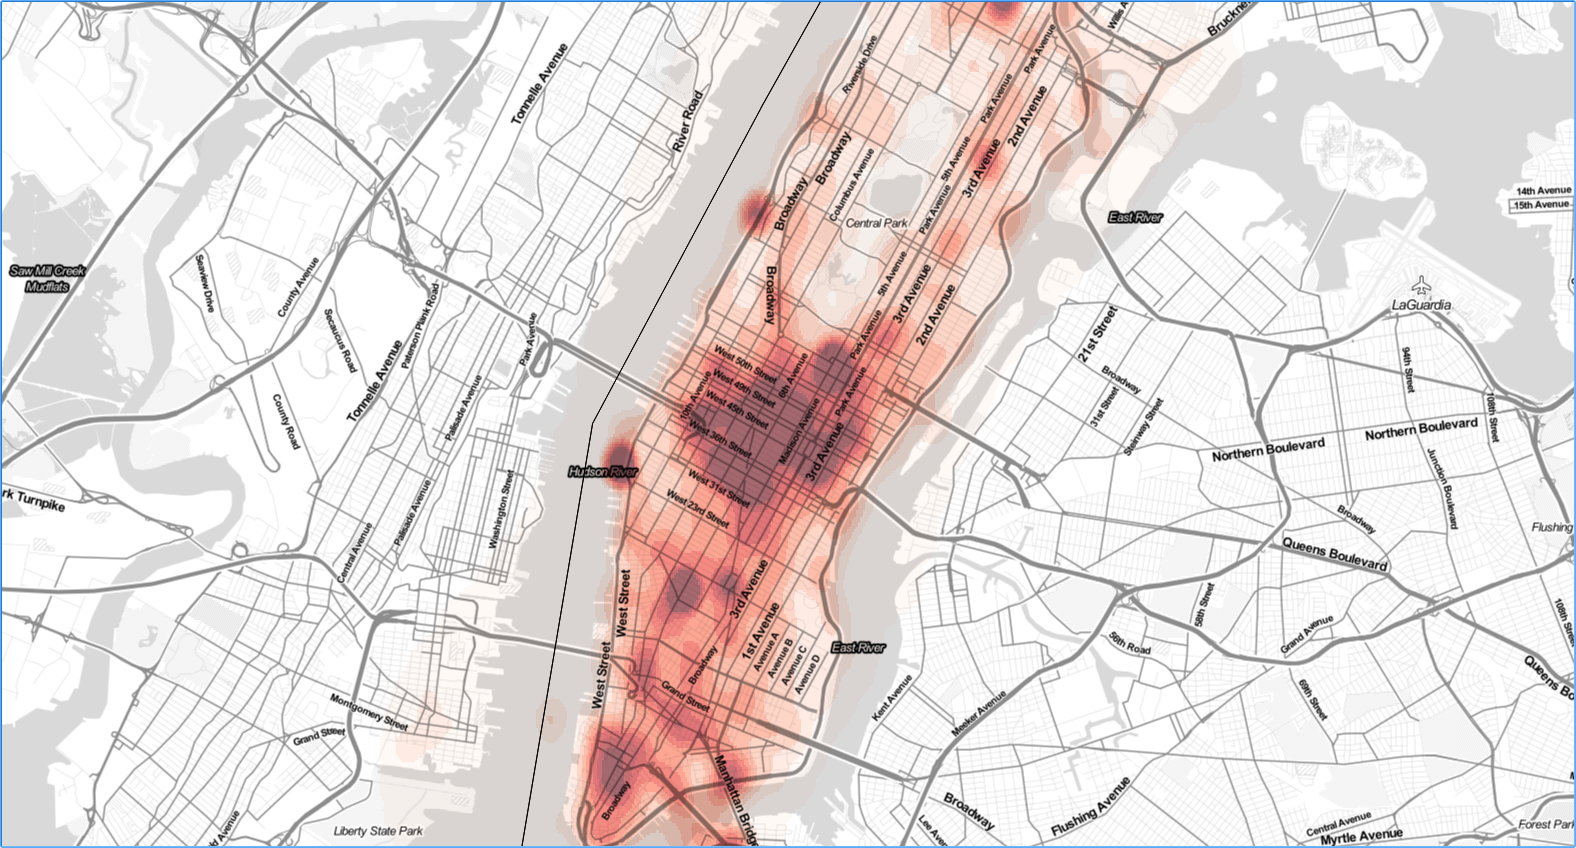 Lower Manhattan mobile network use pattern